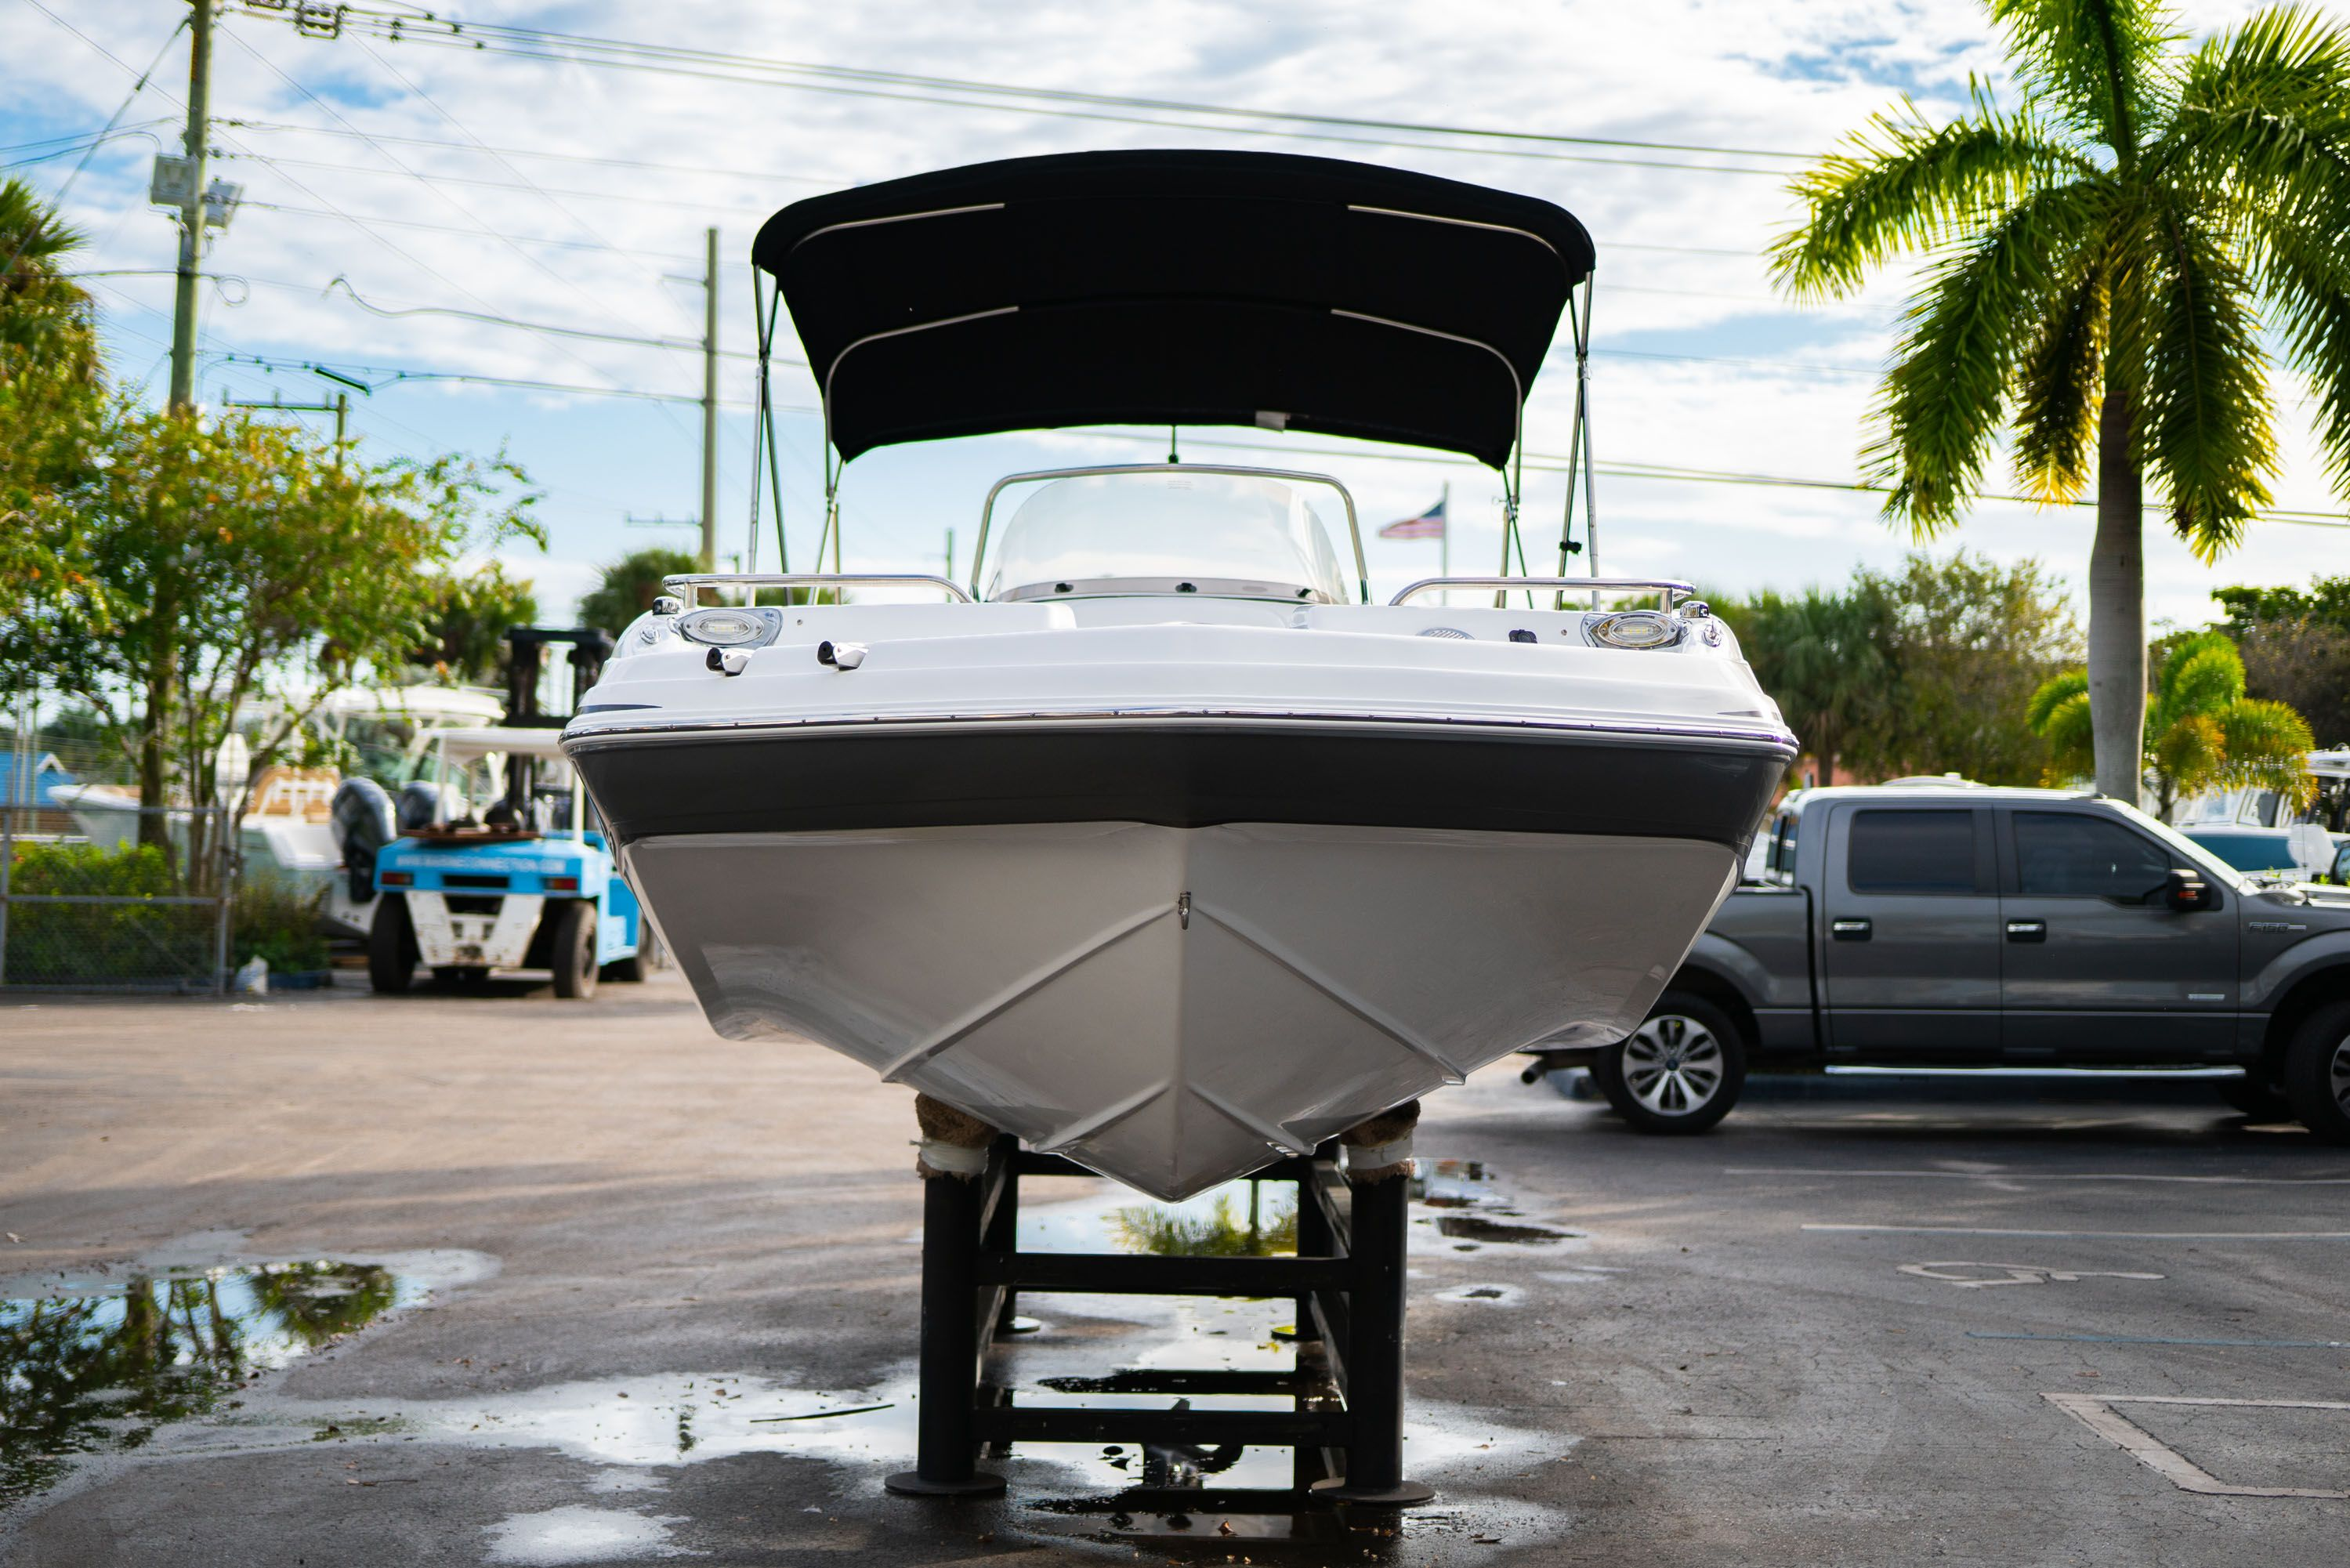 Thumbnail 2 for New 2019 Hurricane Sundeck Sport SS 231 OB boat for sale in West Palm Beach, FL